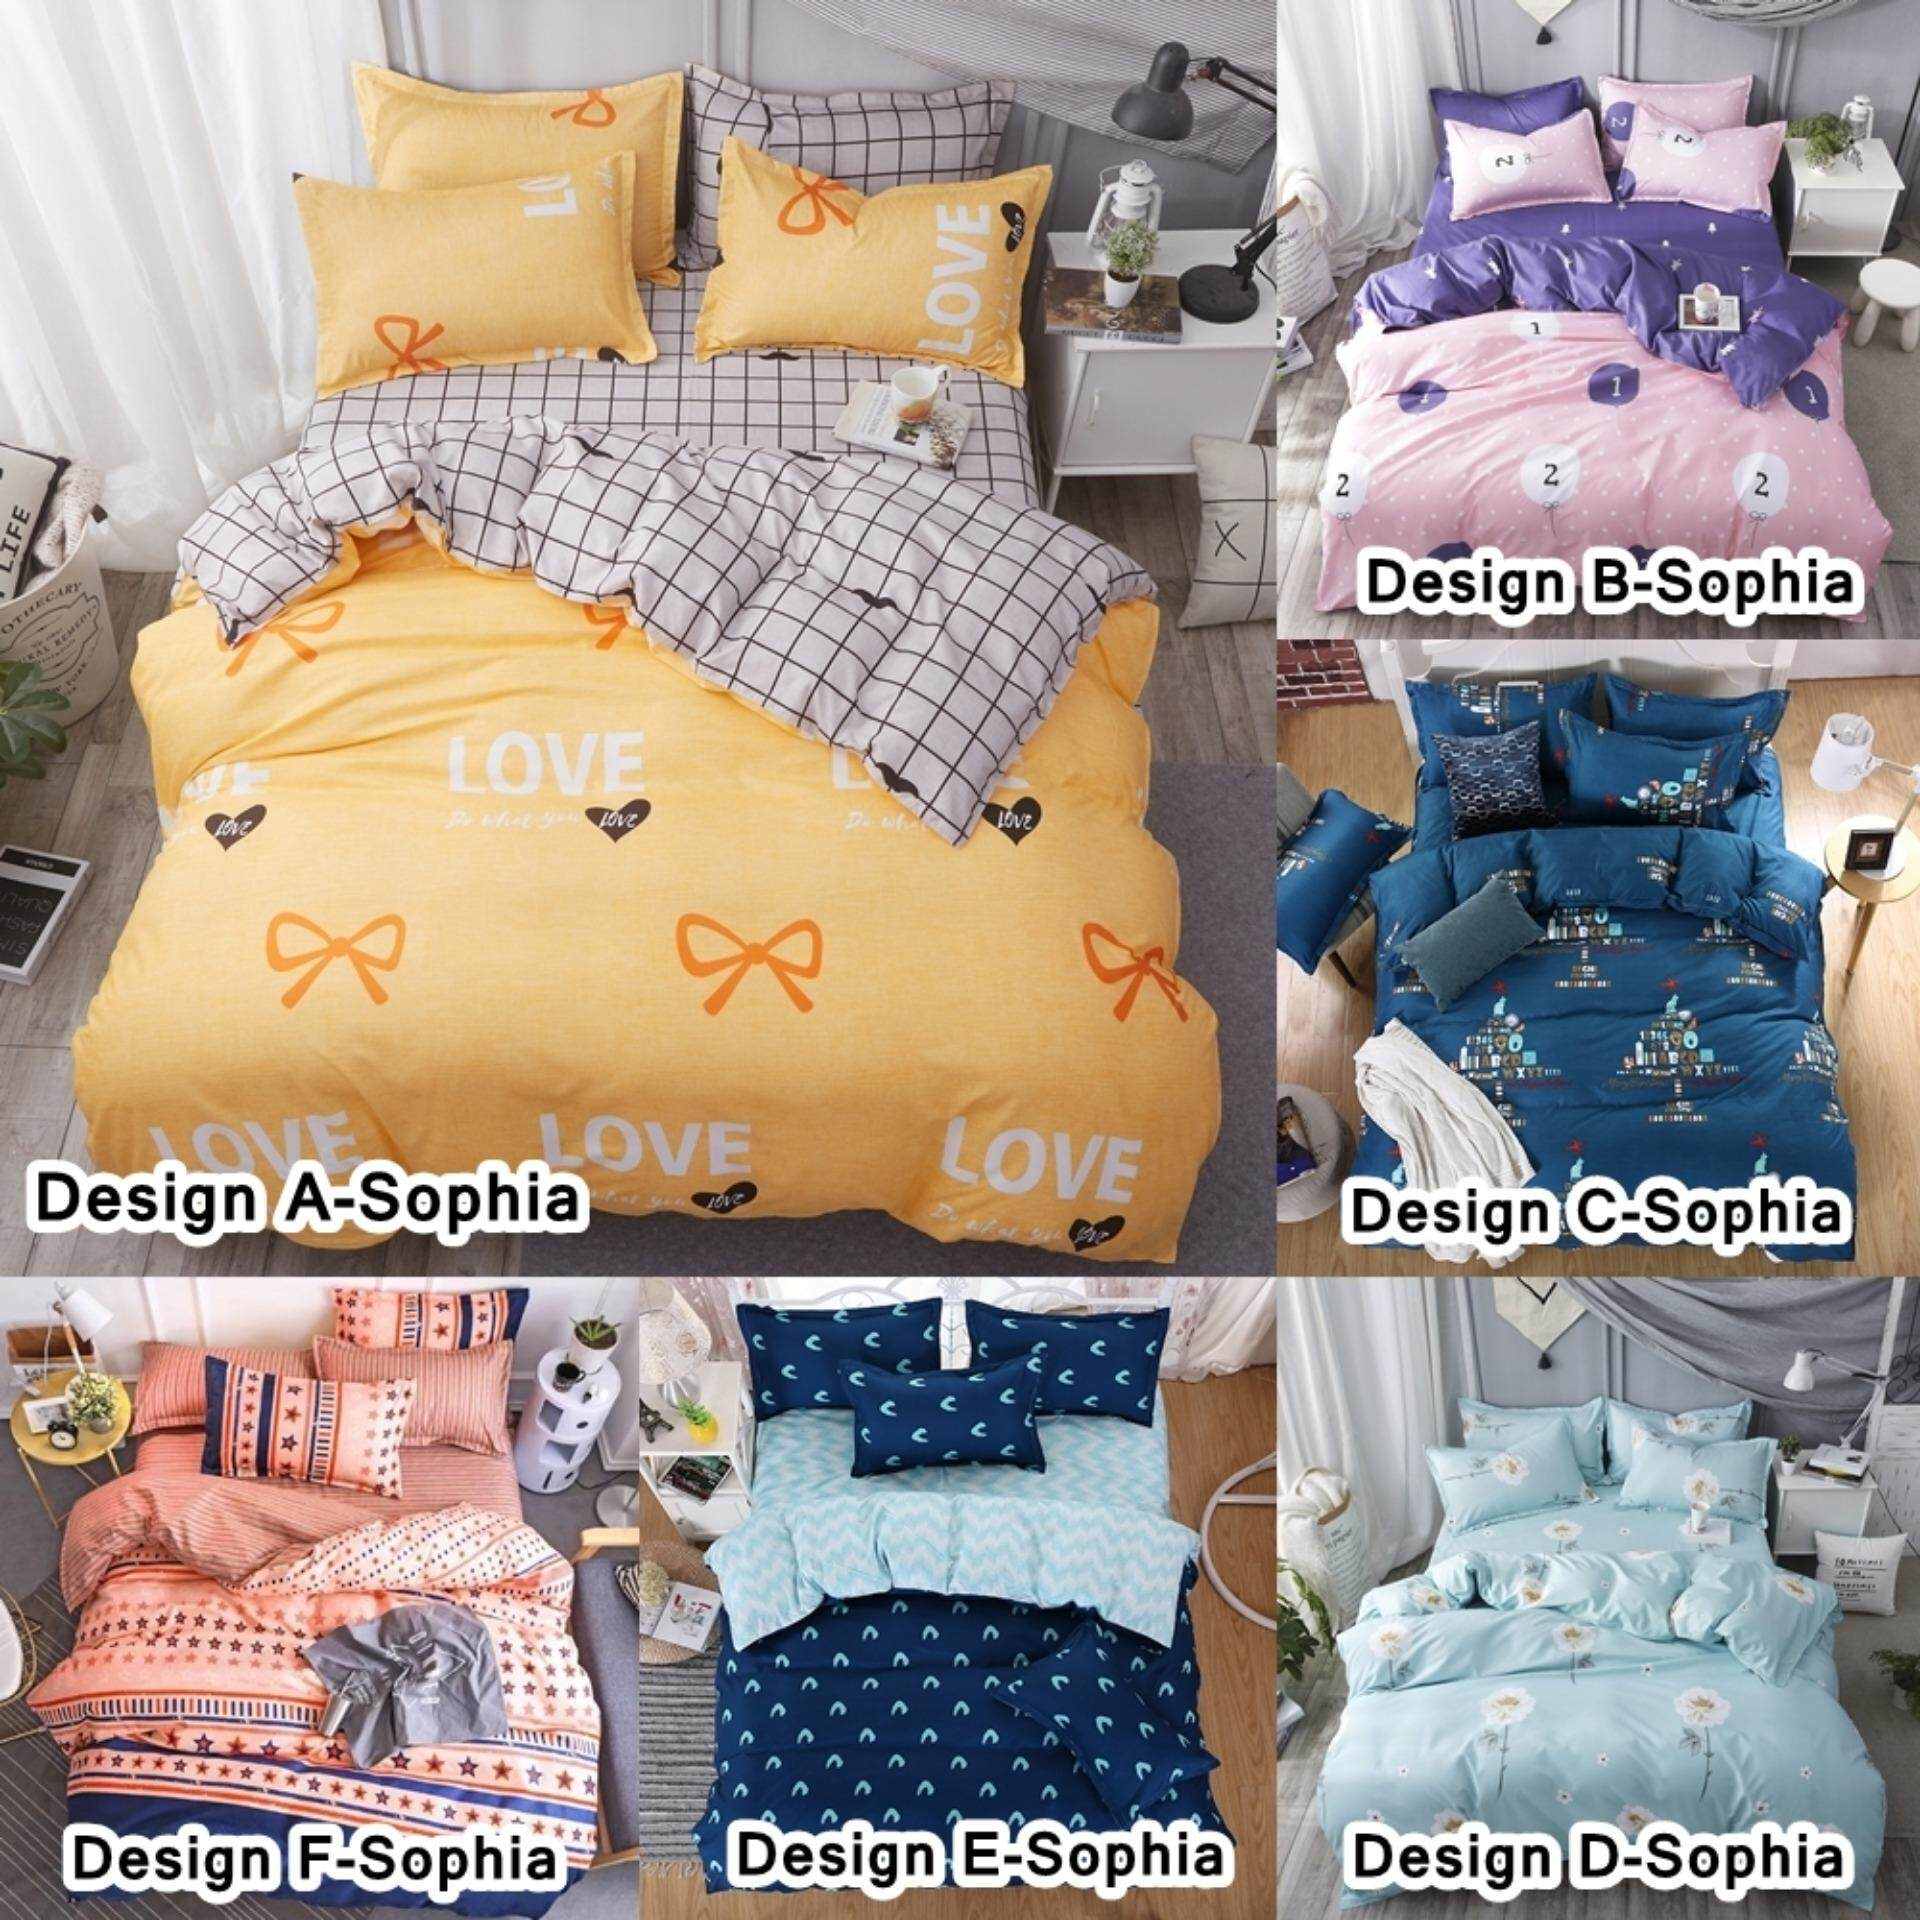 Home Bedding - Buy Home Bedding at Best Price in Malaysia | www ...